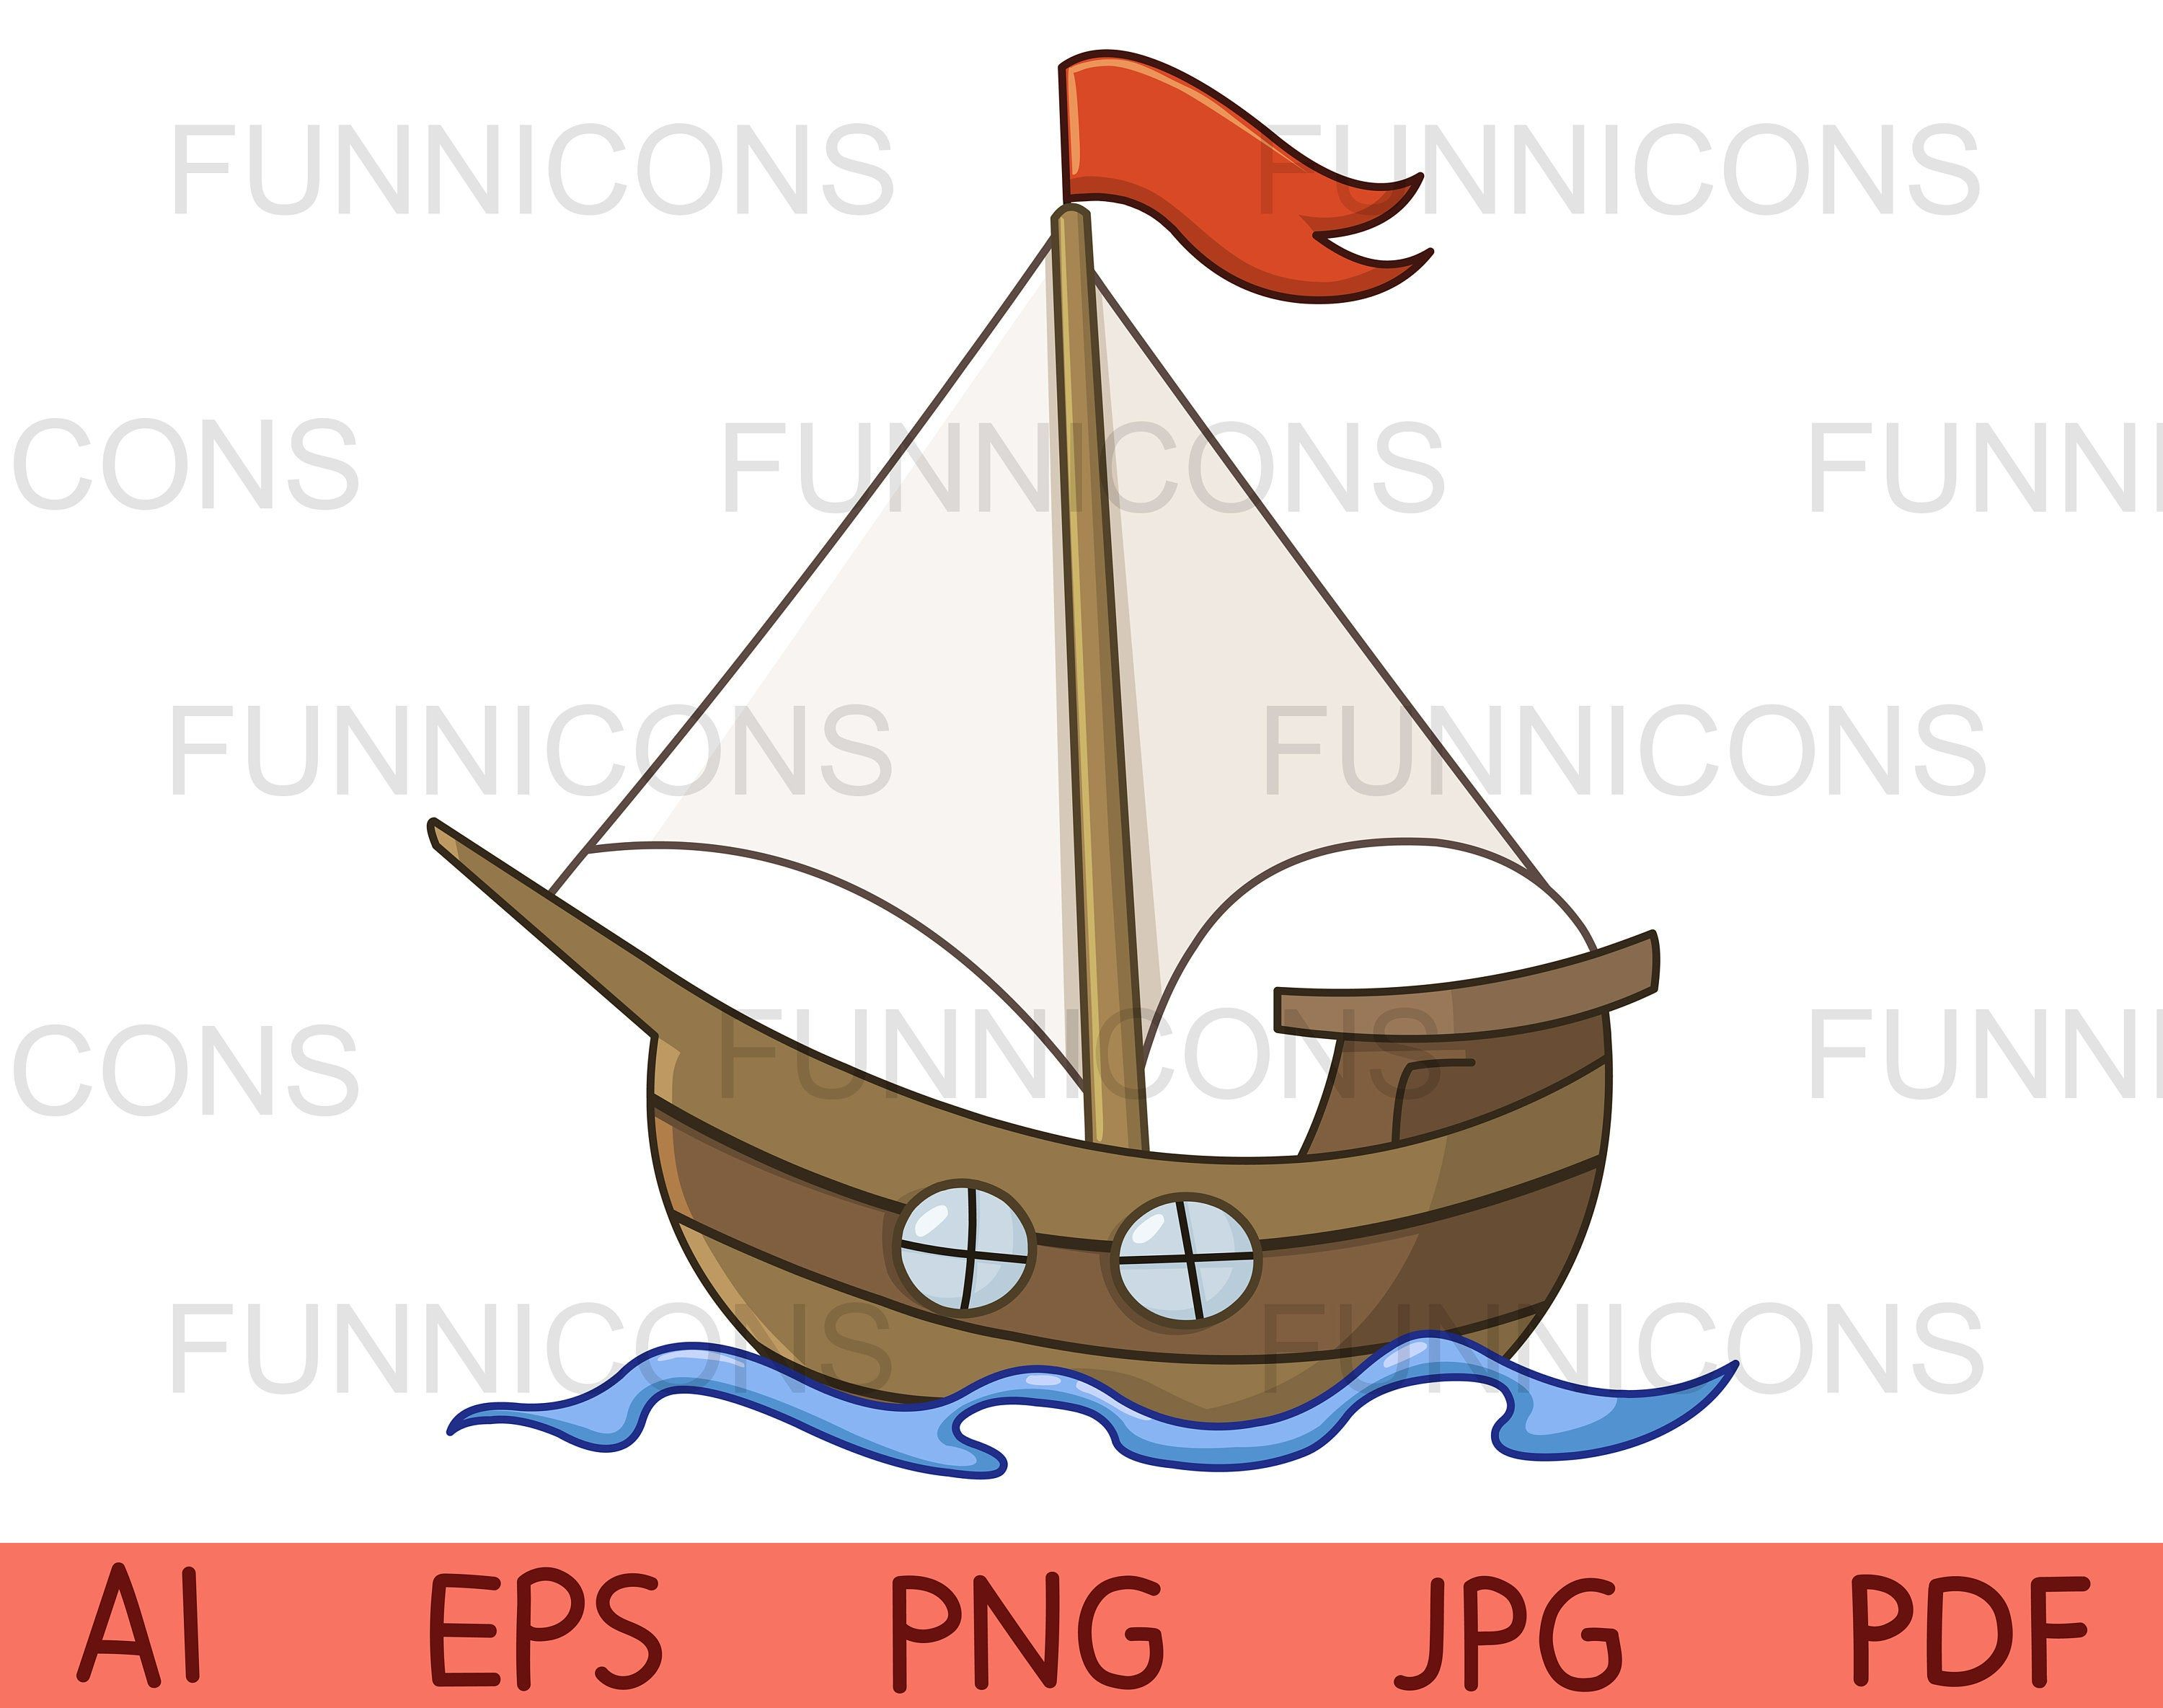 Clipart Of A Cartoon Sailboat With A Red Flag Vector Illustration Ai Eps Png Pdf And Jpg Files Included Digital Files Instant Download A Cartoon Clip Art Vector Illustration